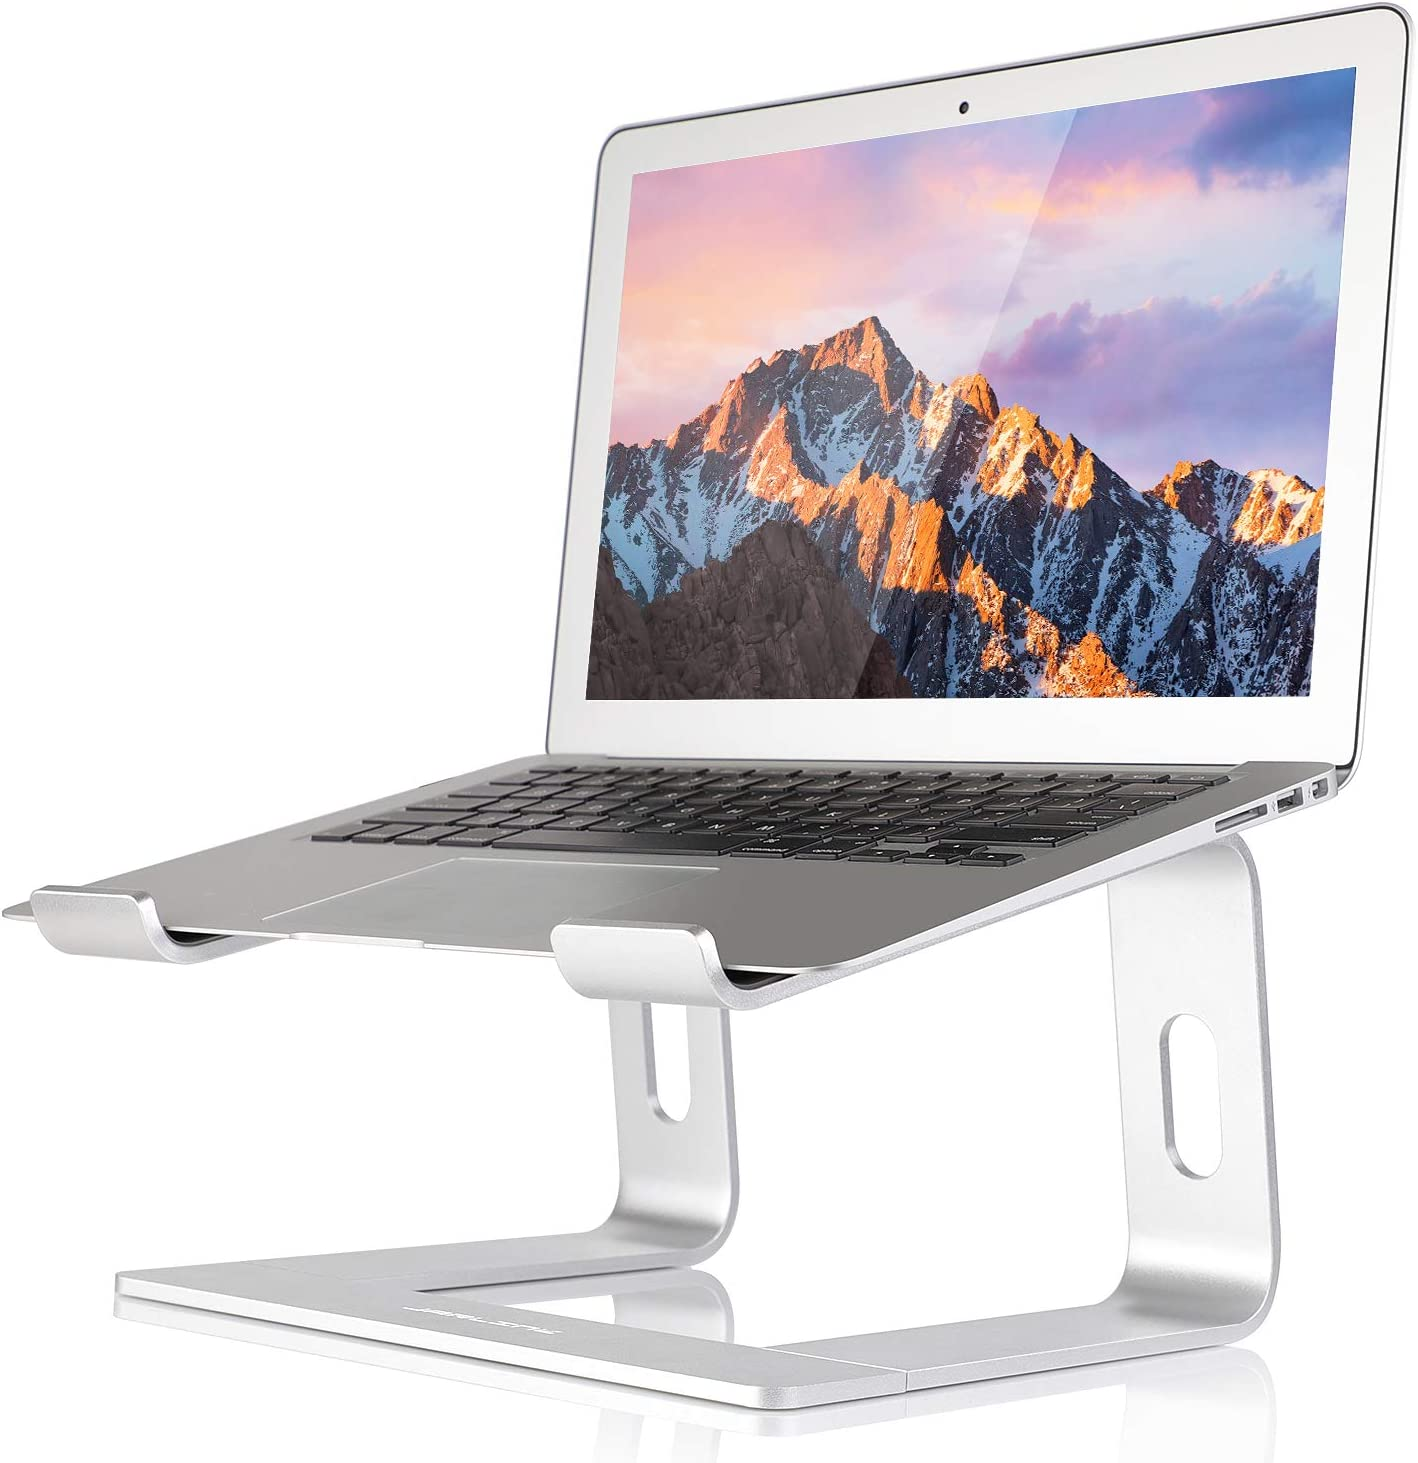 JARLINK Aluminum Laptop Stand, Ergonomic Detachable Laptop Holder Riser Compatible with MacBook Air Pro/Dell XPS/HP/Lenovo (up to 15.6 inches), Silver